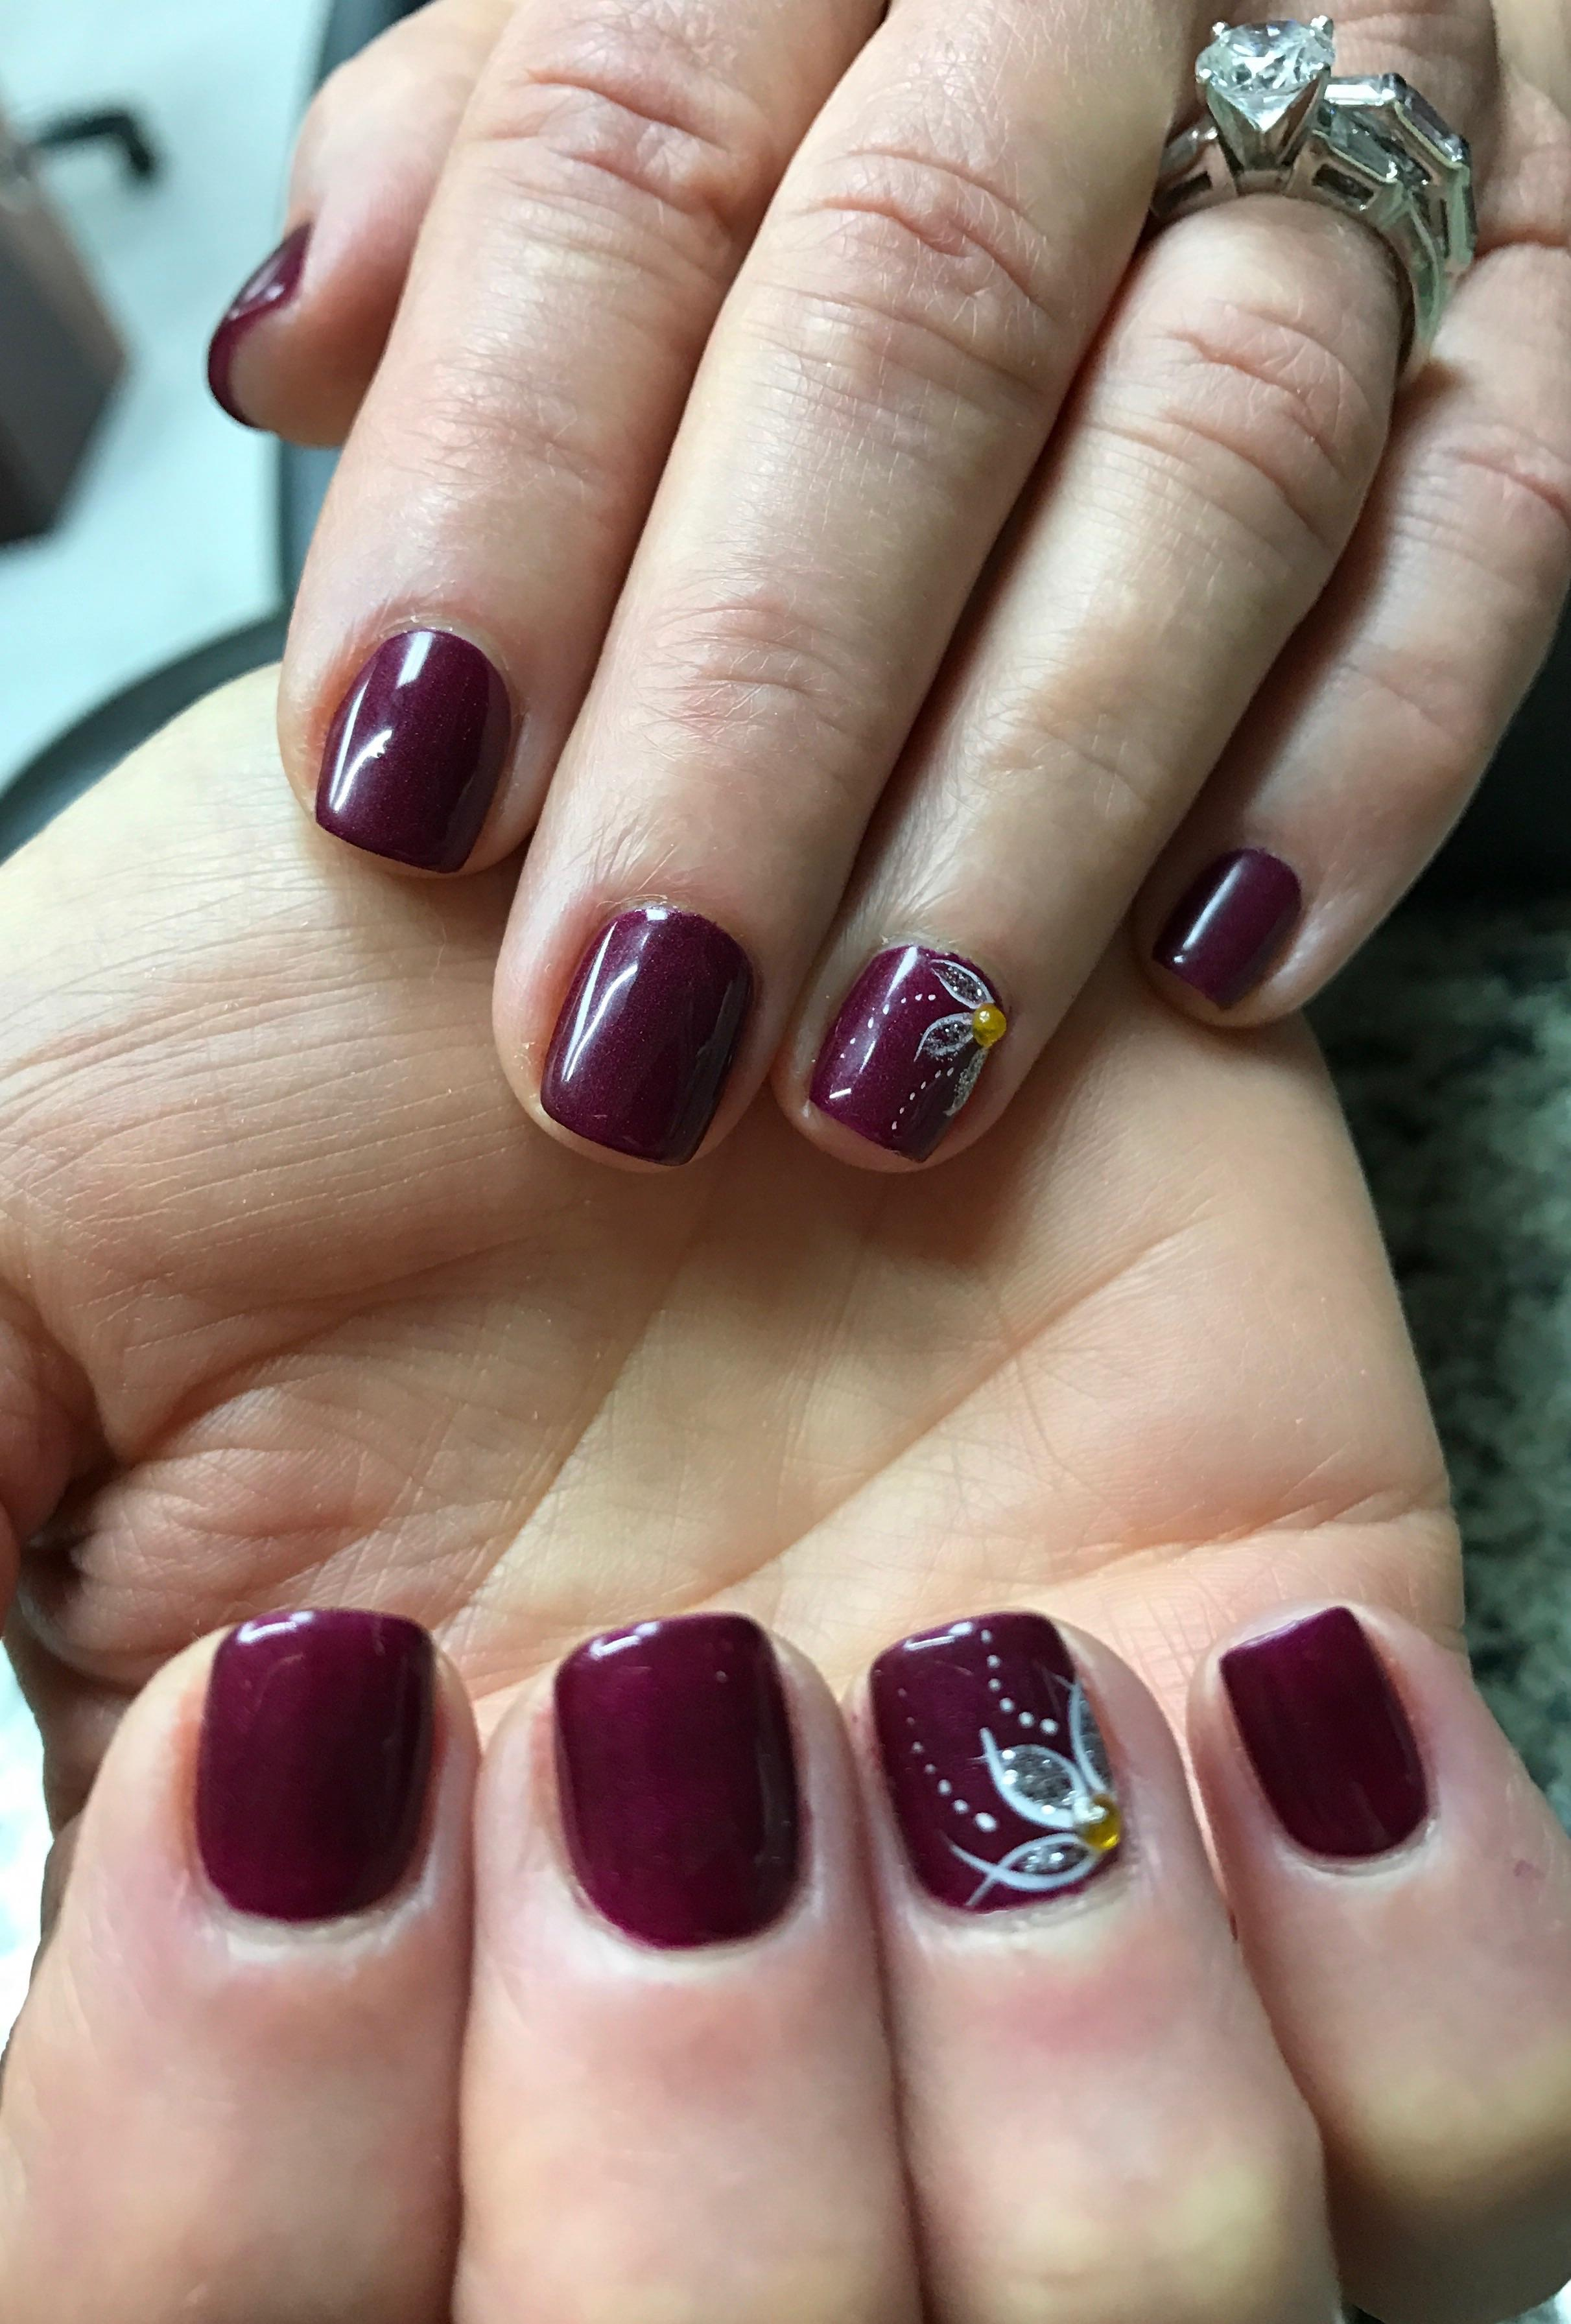 Lush Nails in Paxtonia, PA 17112 - ChamberofCommerce.com